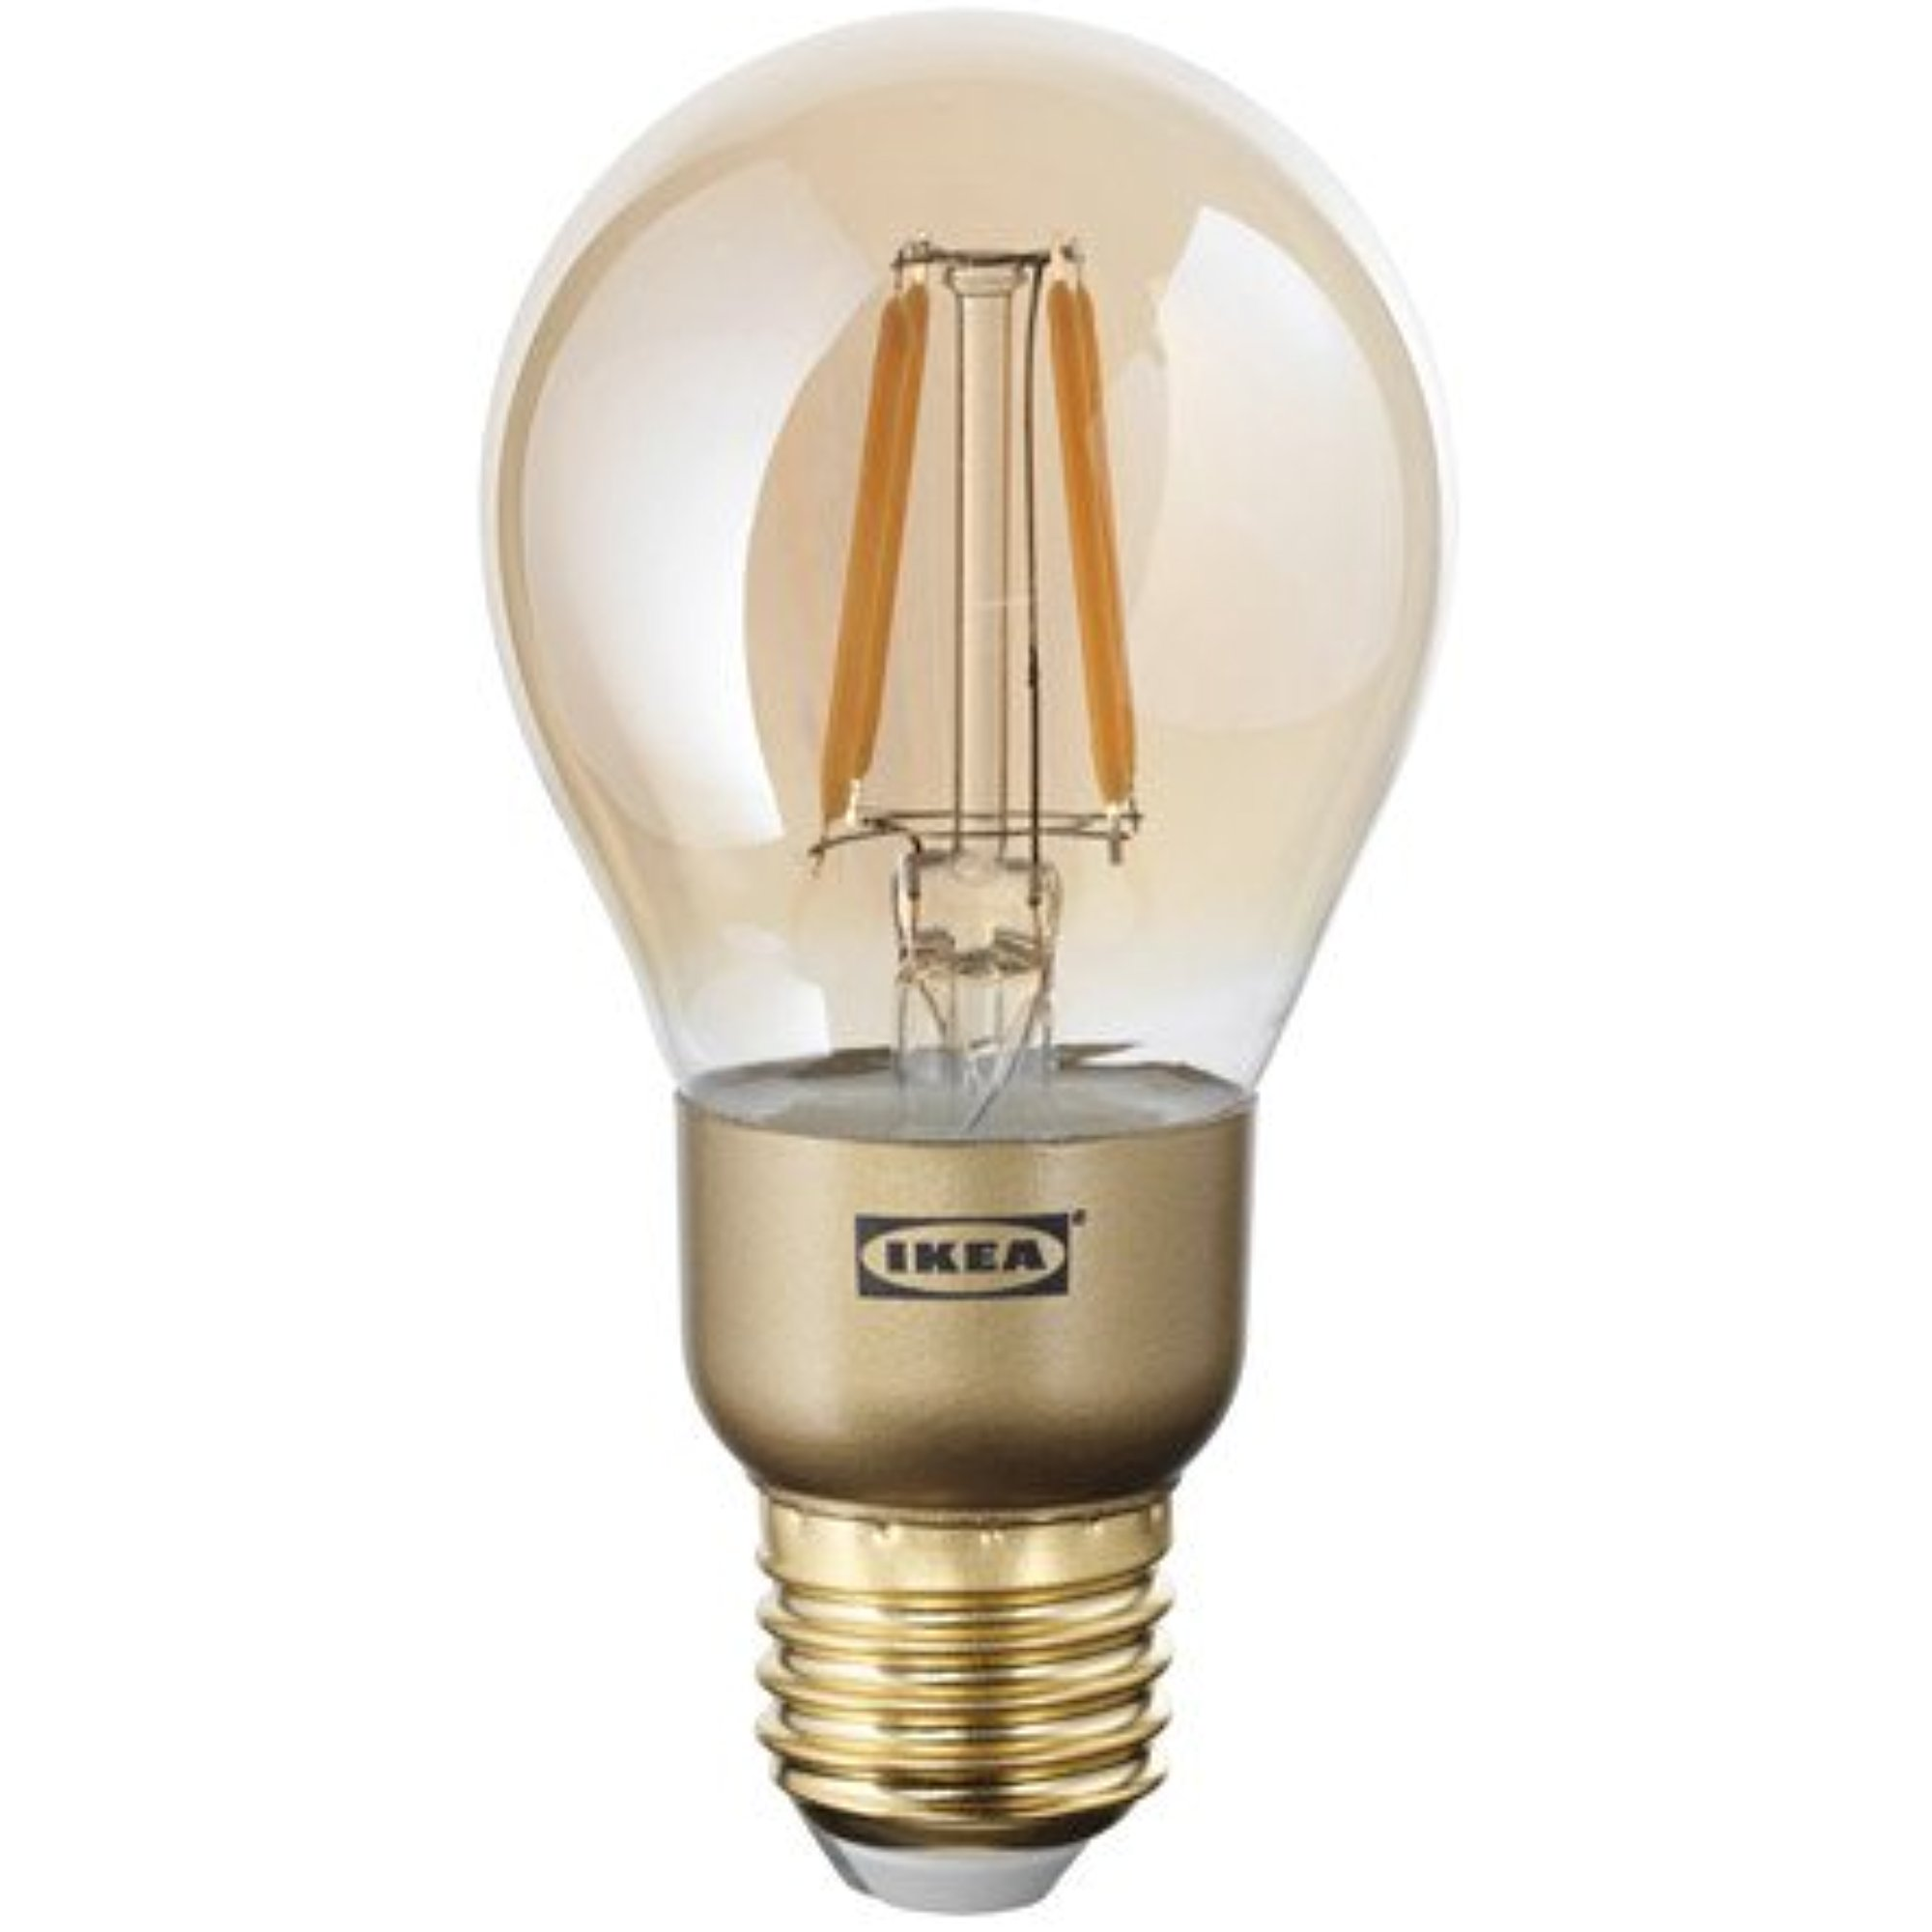 Ikea 2 pack LED bulb E26 400 lumen, dimmable, globe brown clear glass 428.14172.142